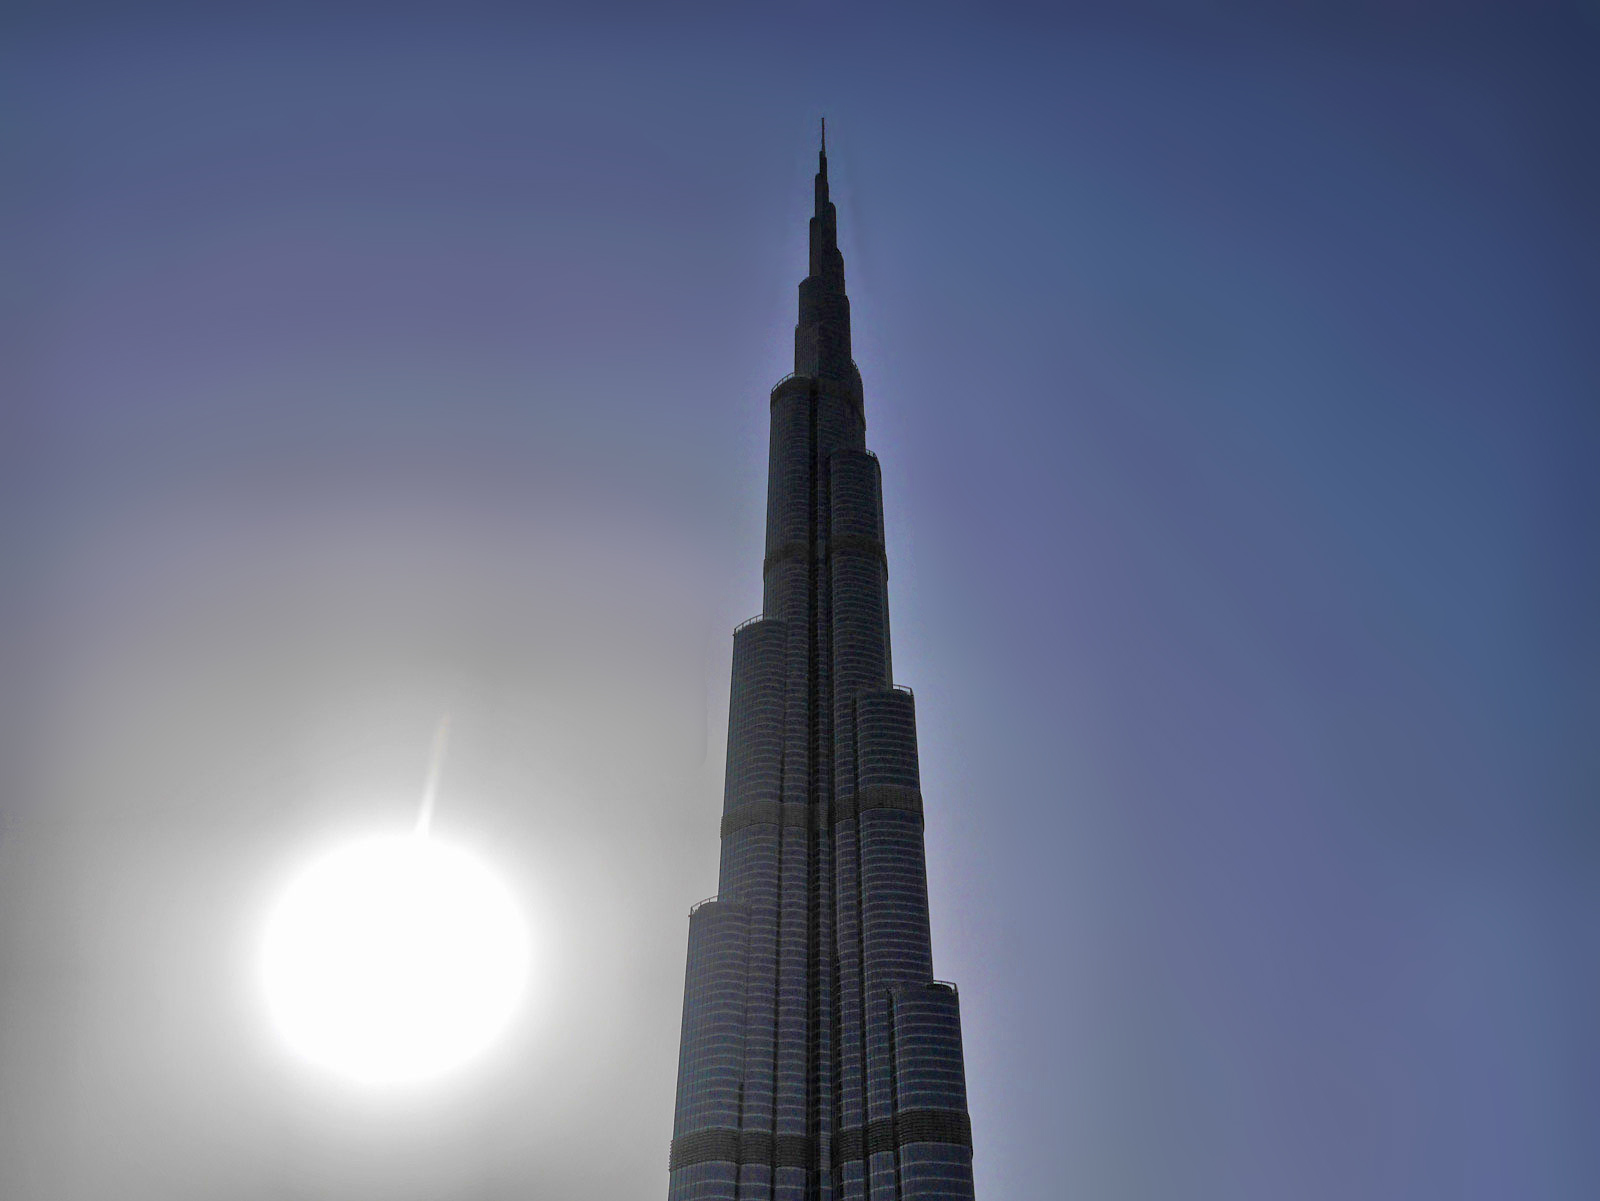 Burj Khalifa: The Tallest Building in The World - Dubai, United Arab Emirates